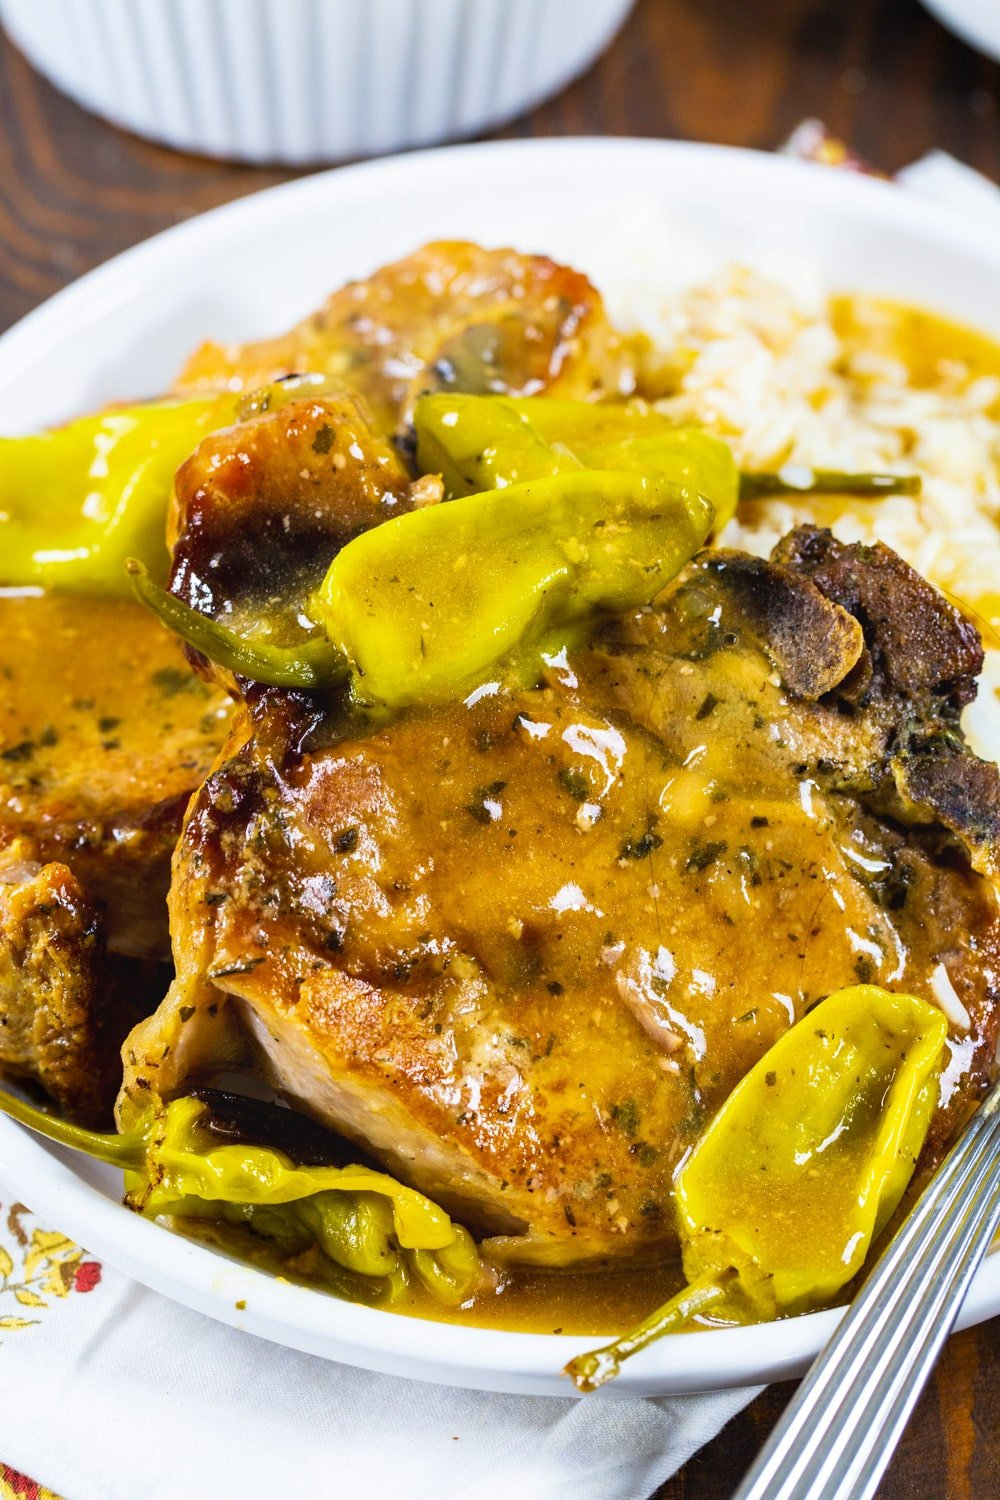 Pork chops with pepperoncini peppers on a plate.